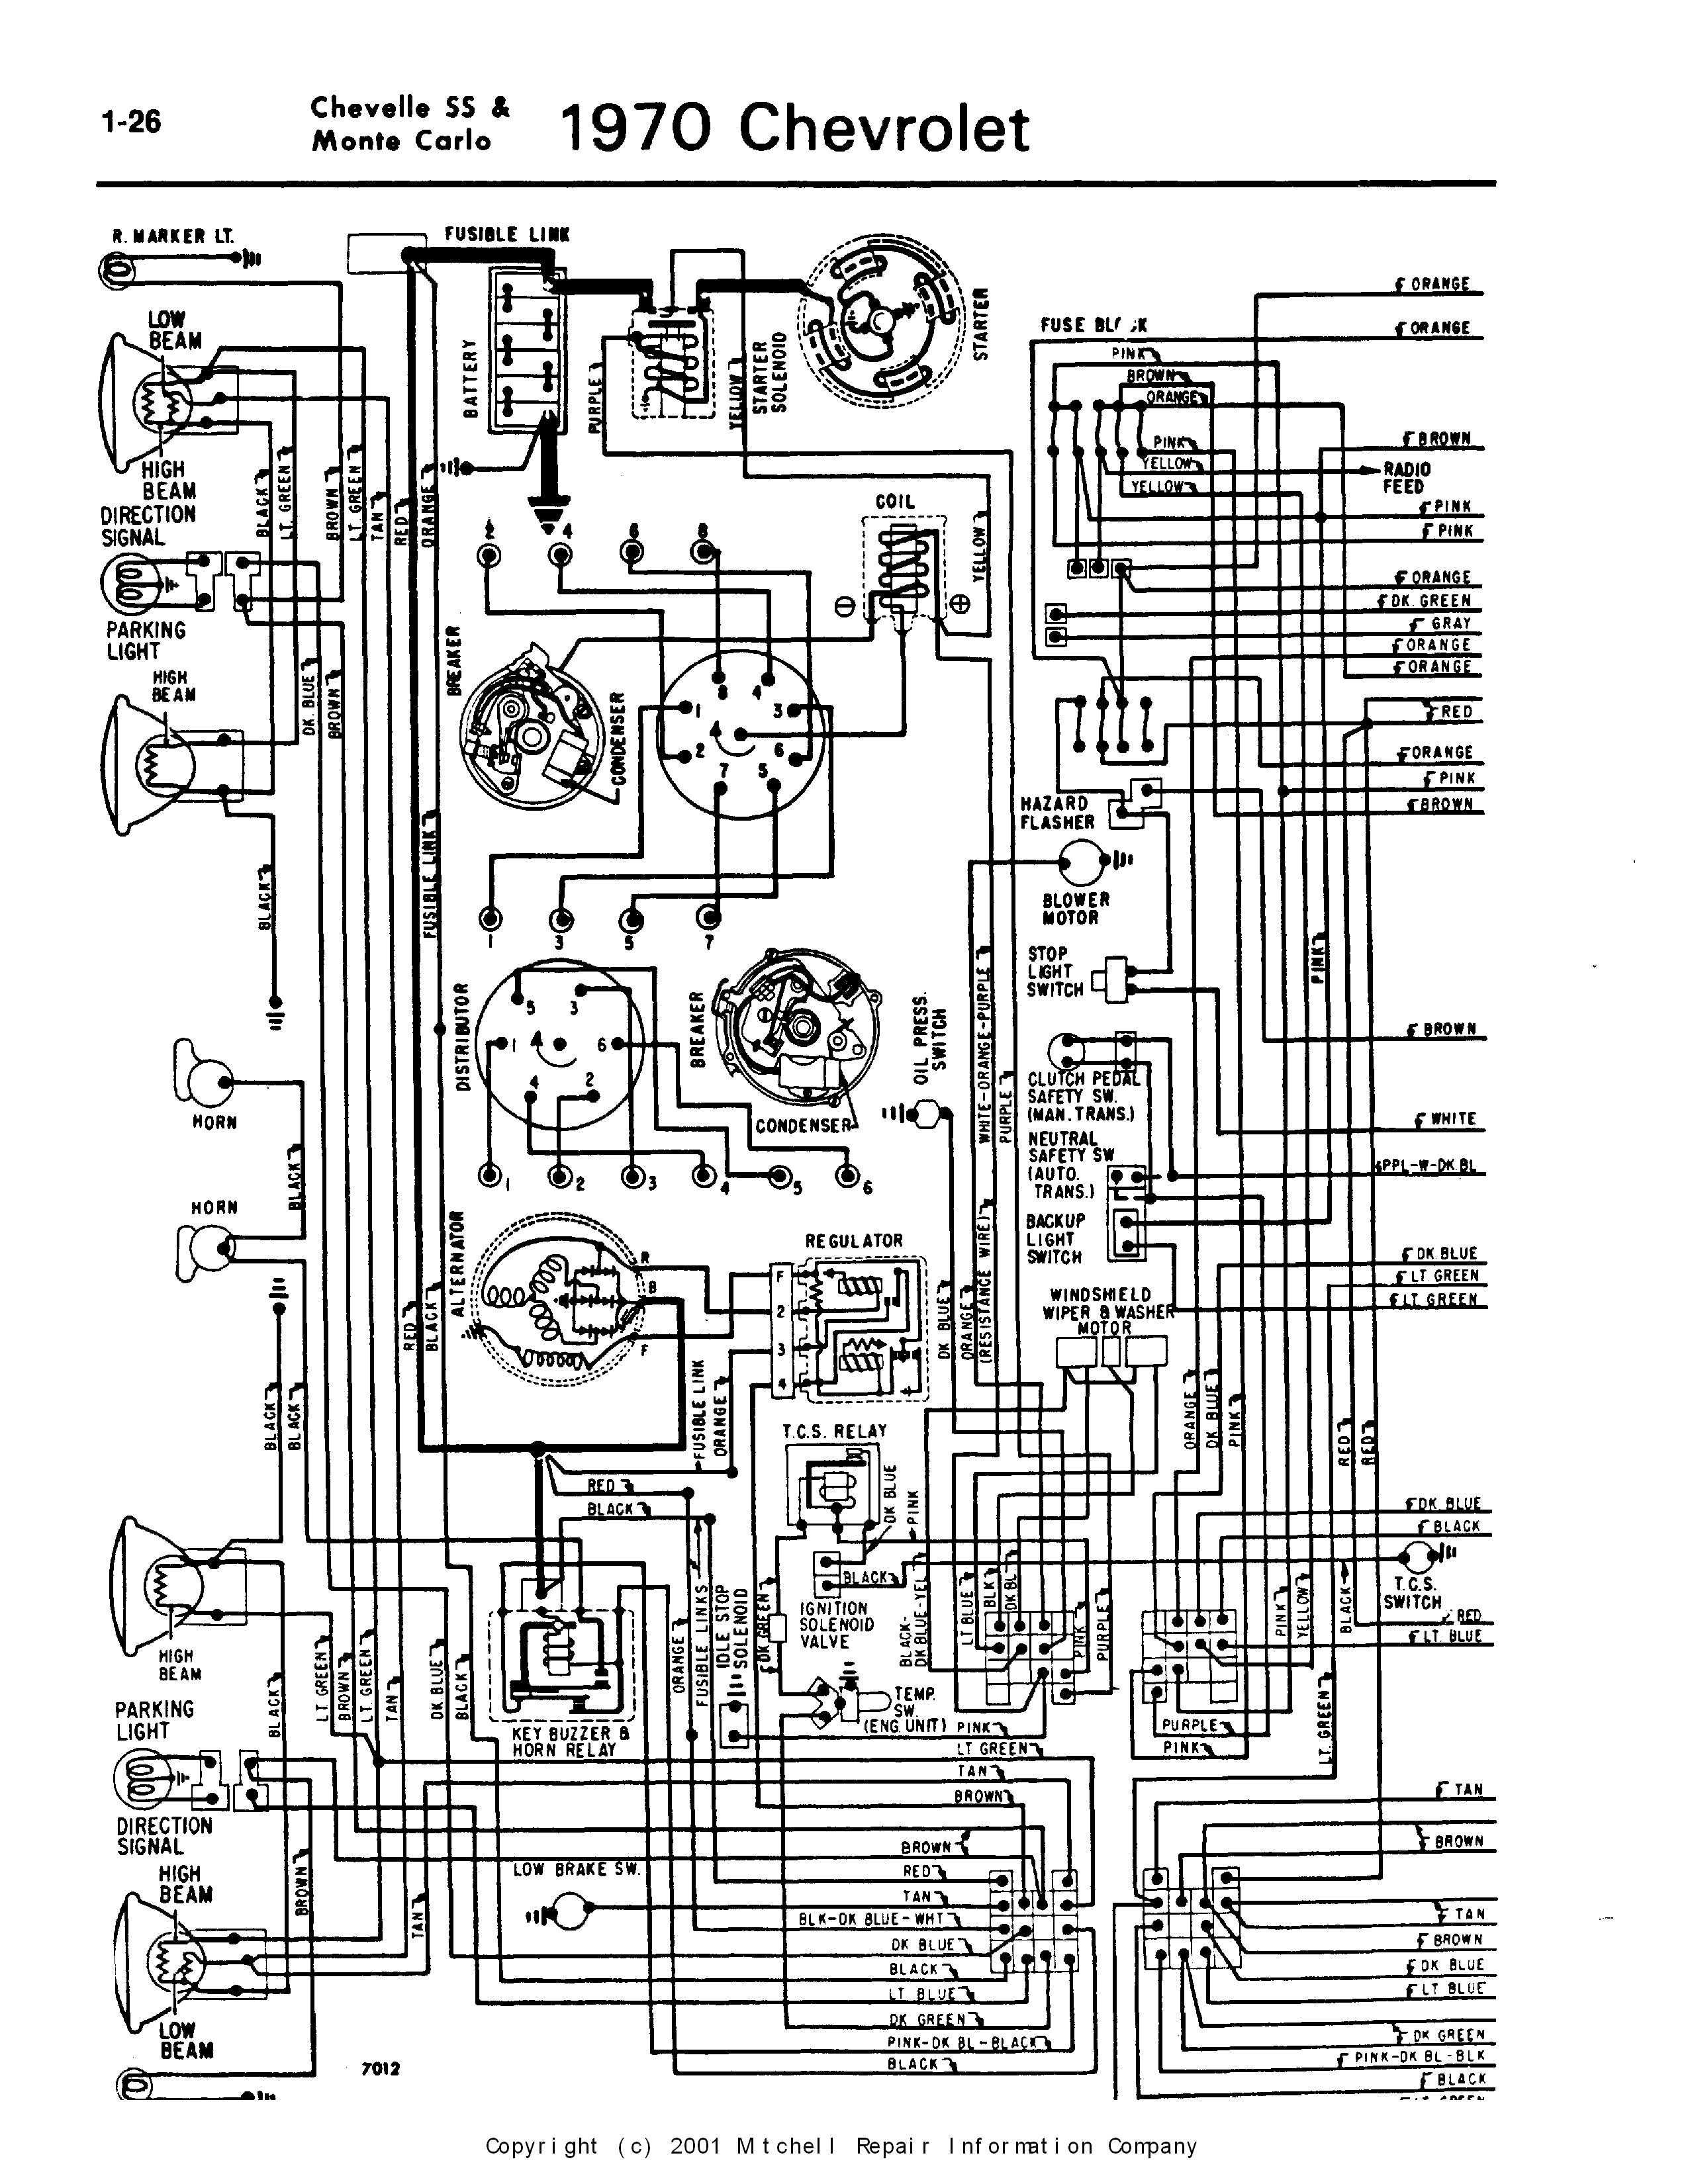 1969 chevelle wiring harness unlimited wiring diagram  1970 chevelle wiring diagram with gauges #10